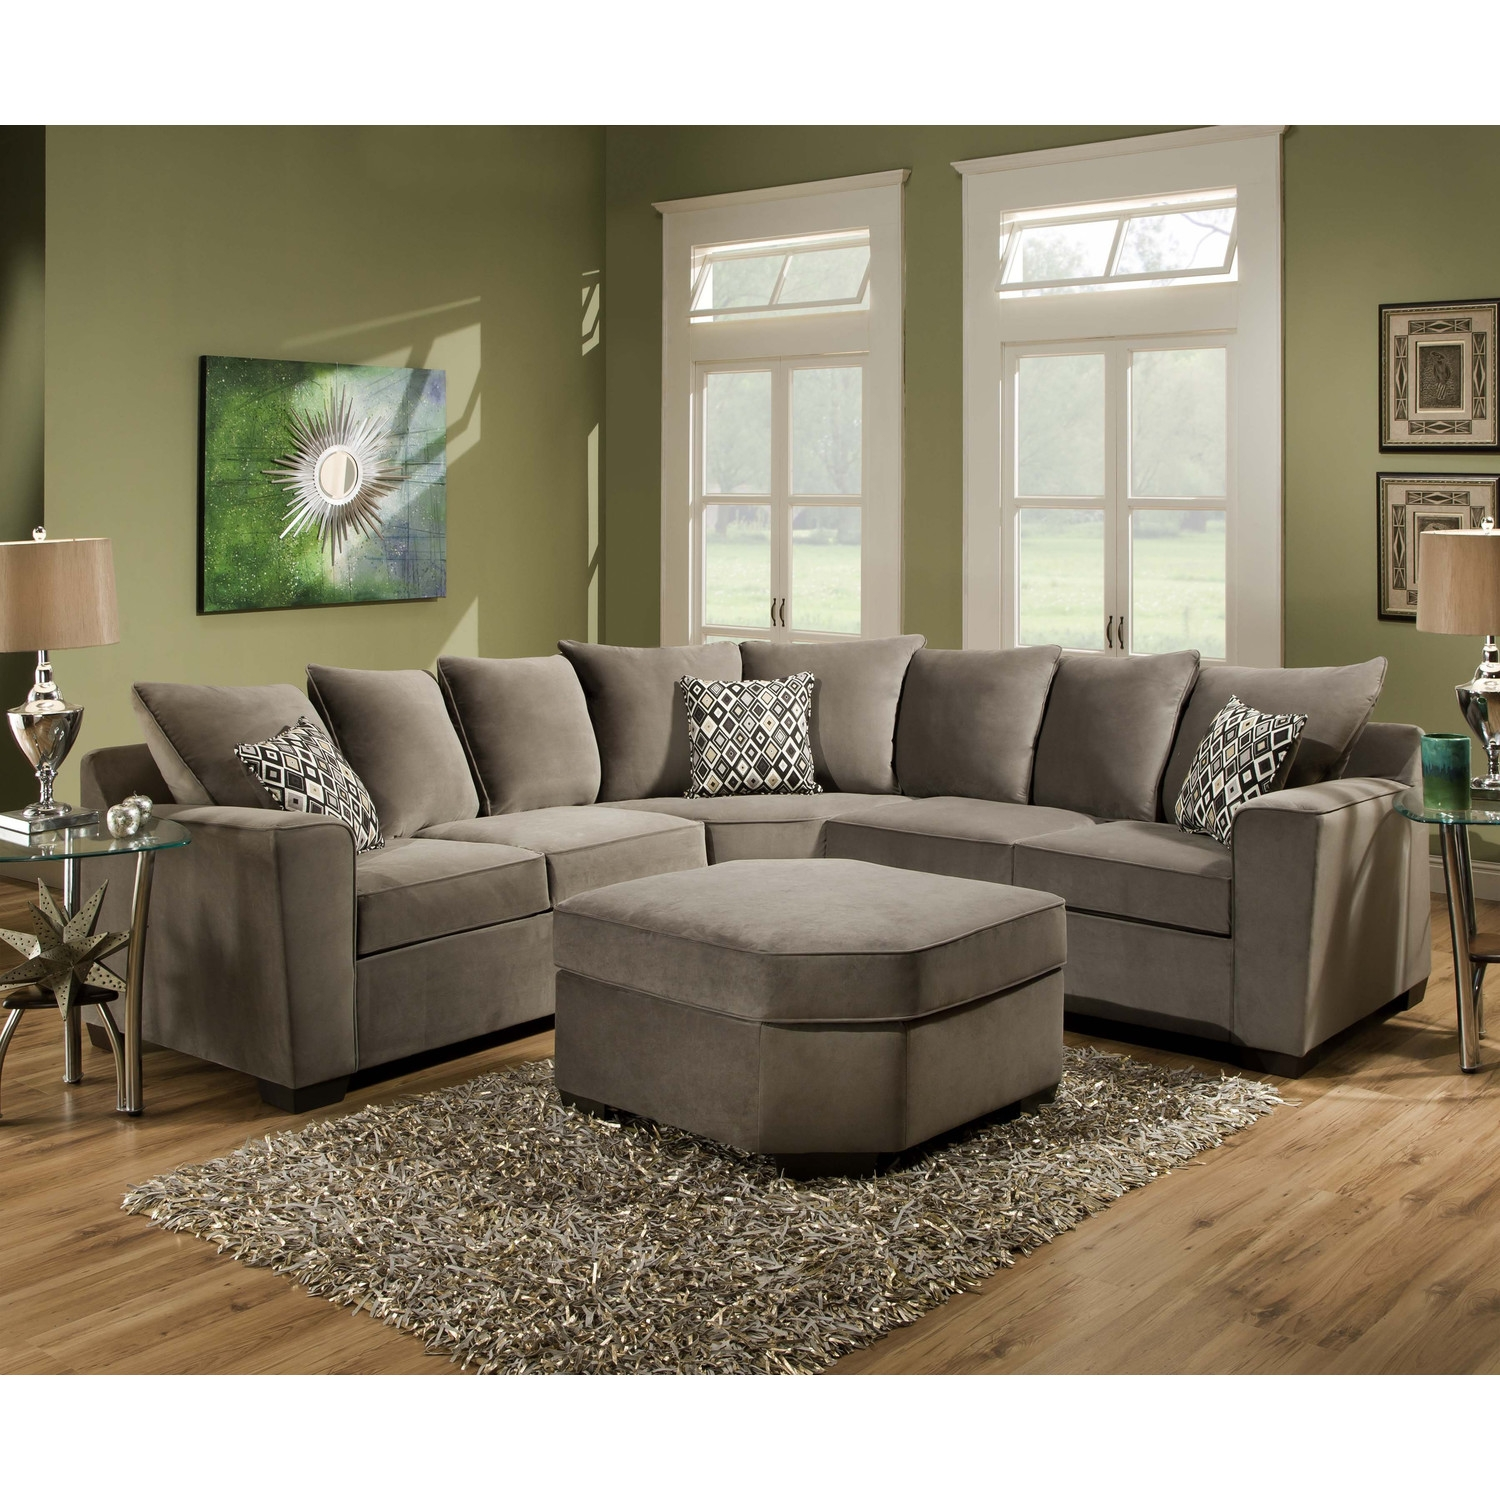 Popular Plush Sectional Sofas 26 With Additional Champion Pertaining To Champion Sectional Sofa (#8 of 12)